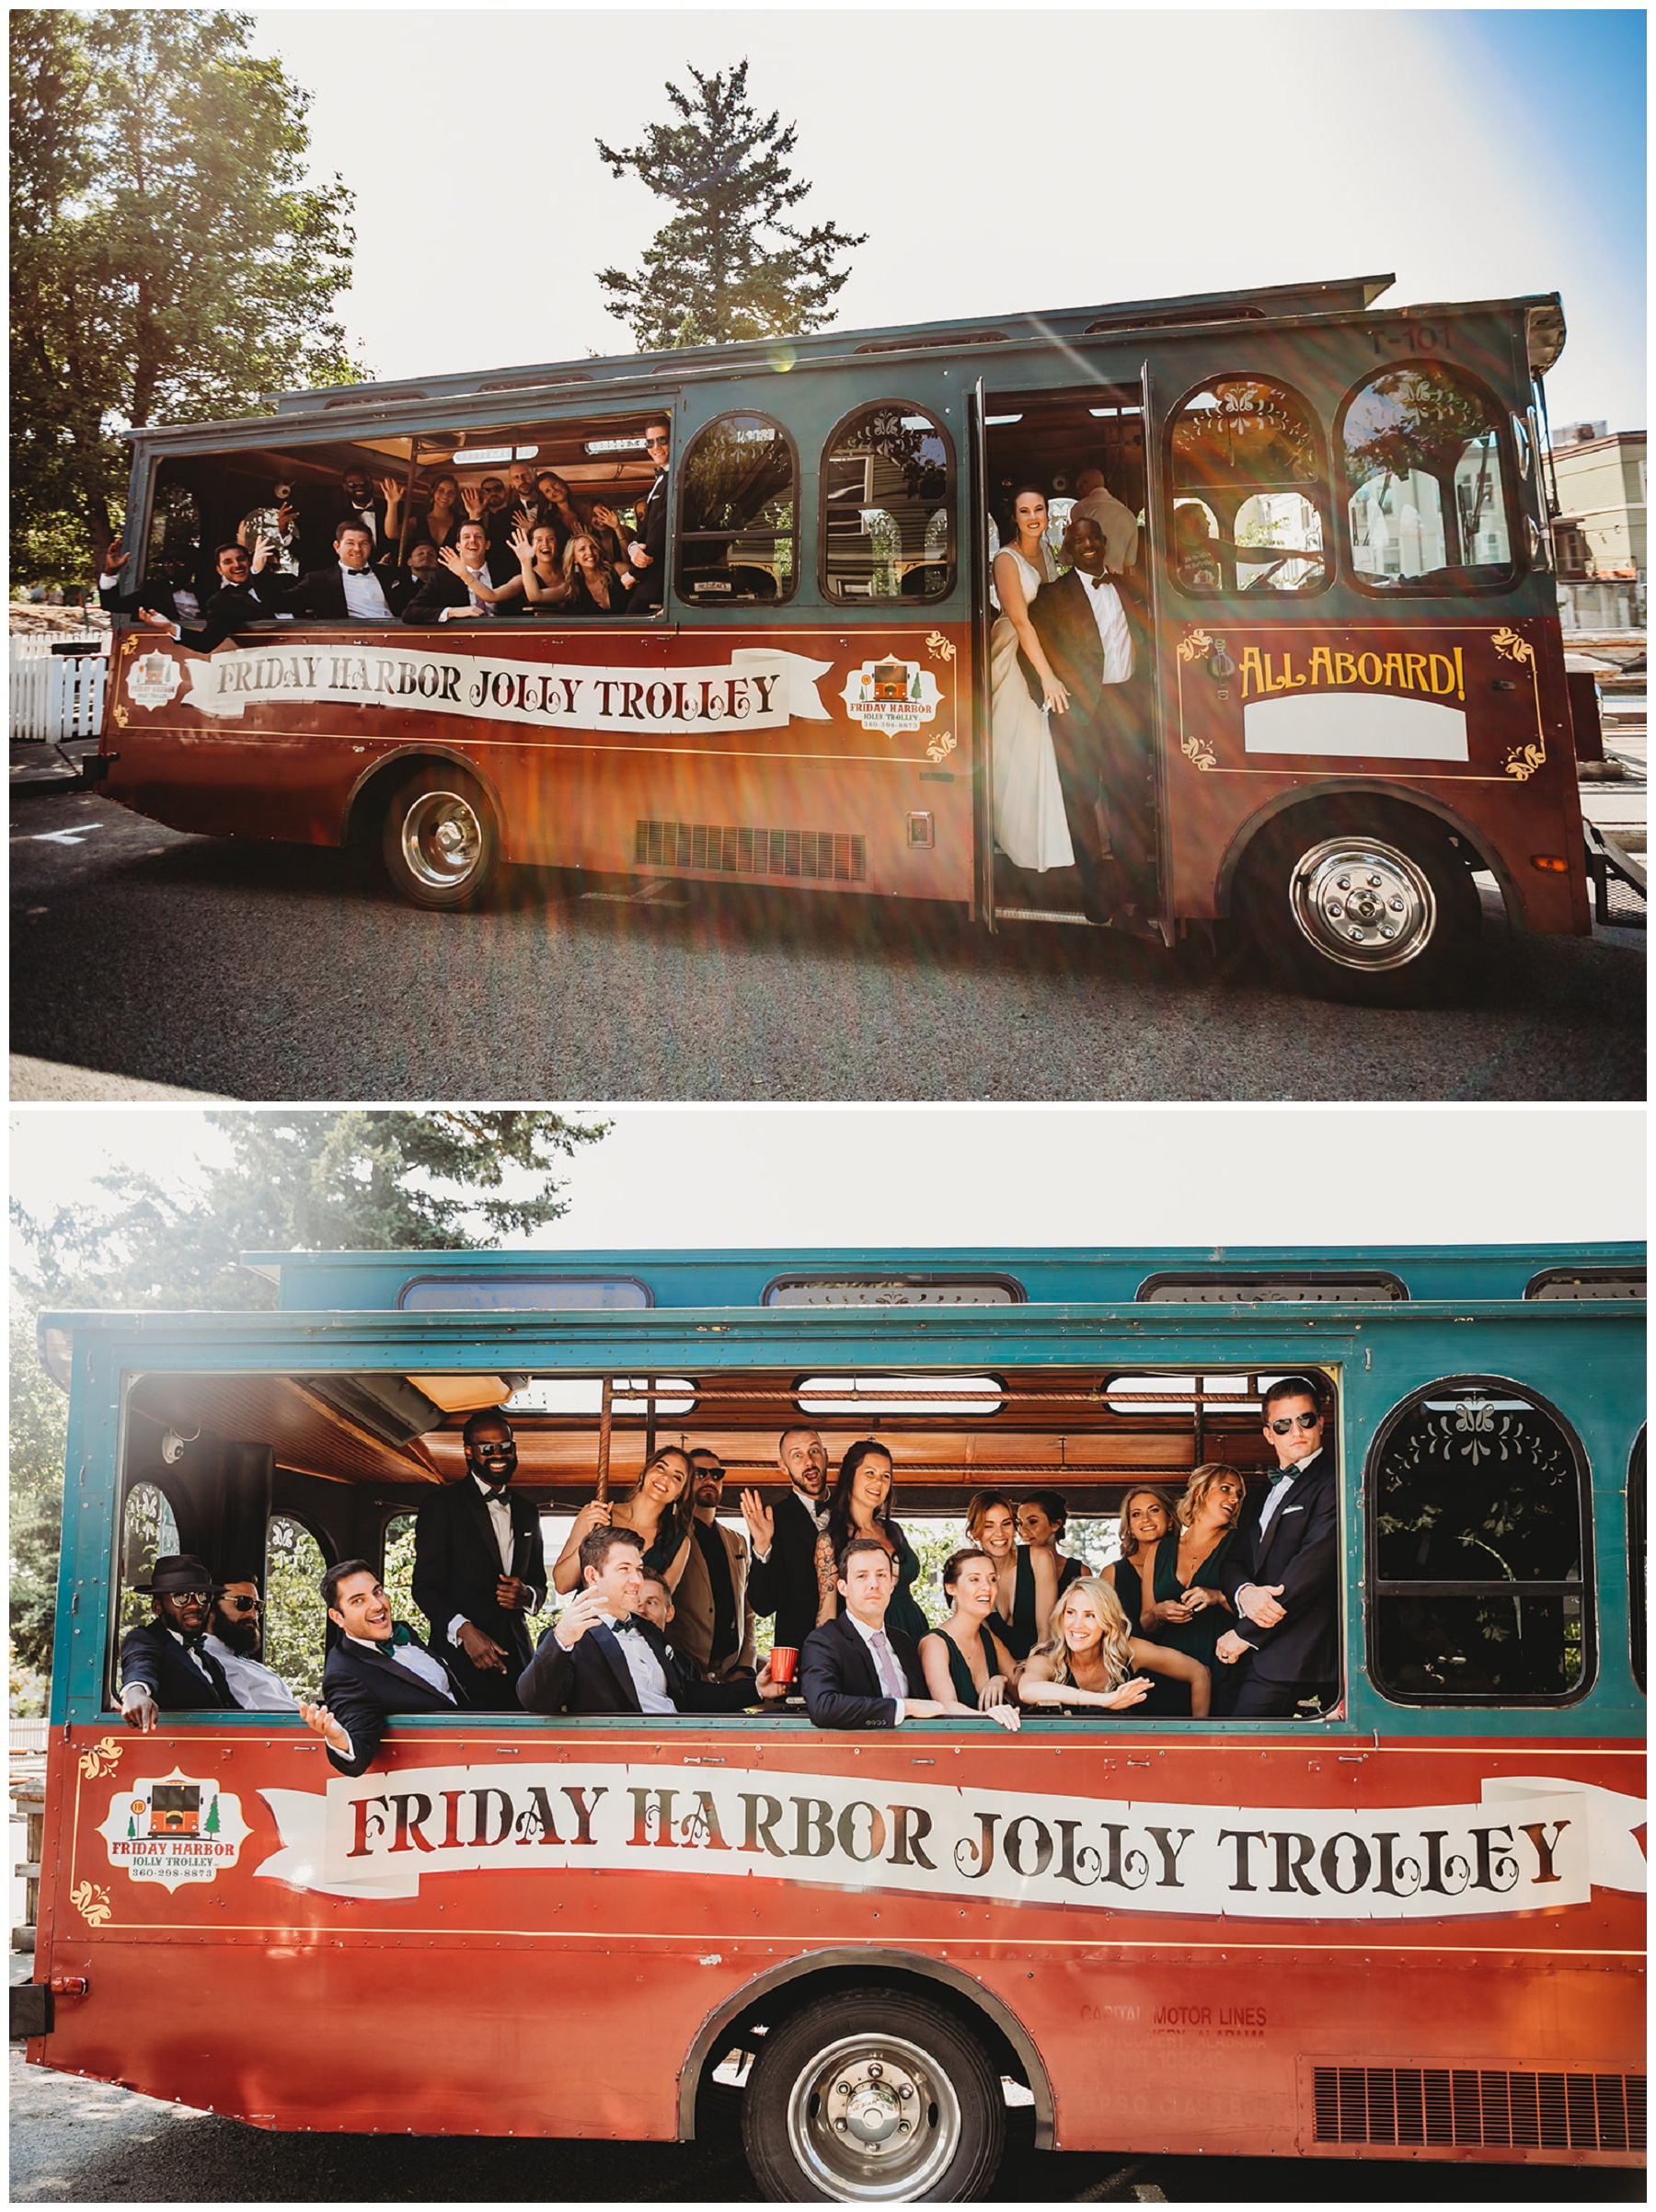 friday harbor trolley with wedding party